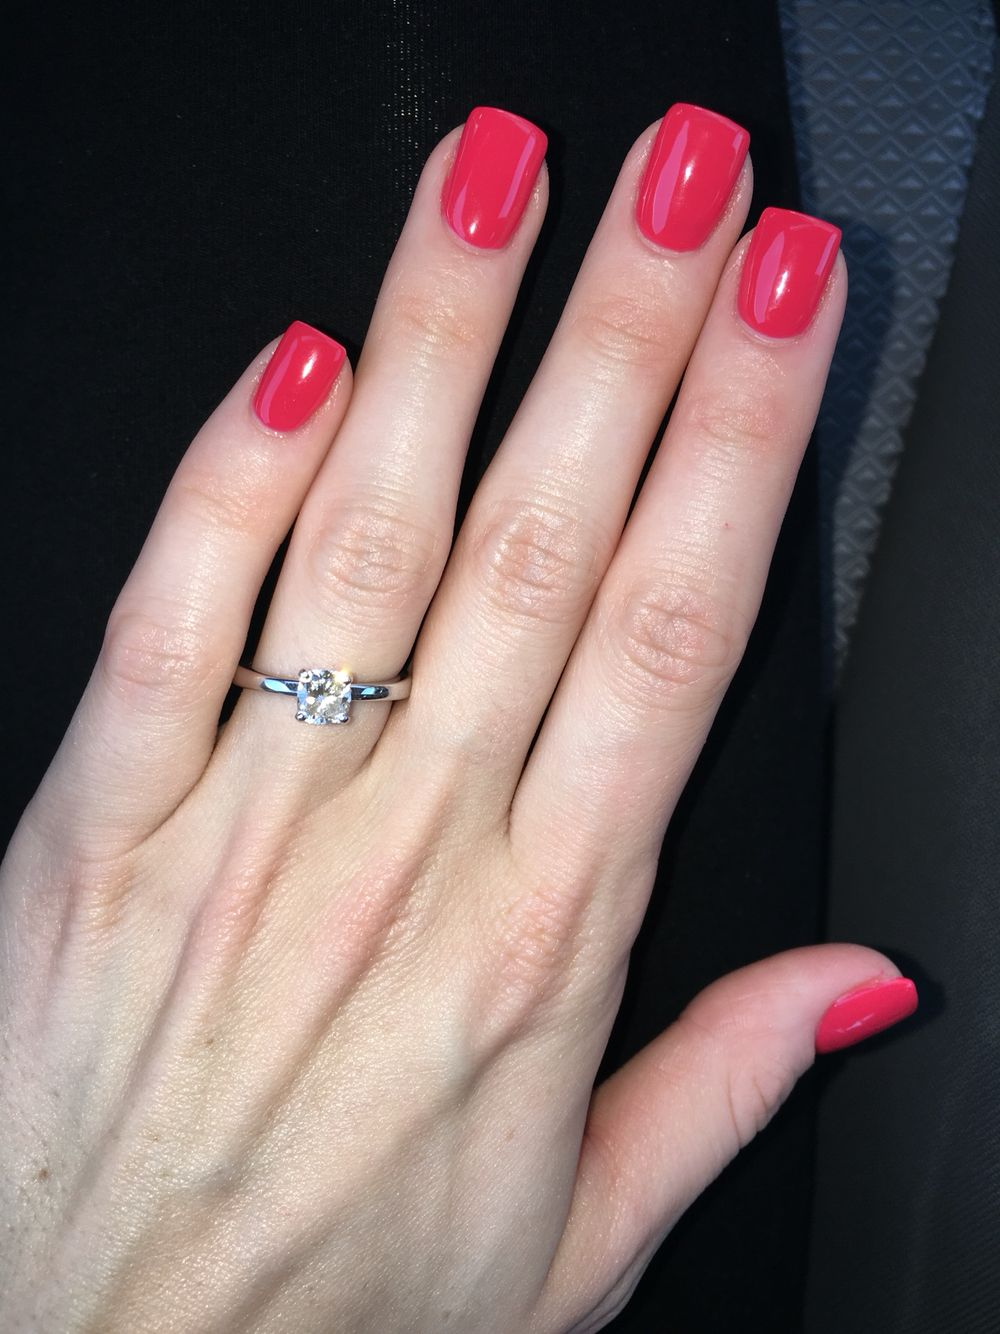 OPI Gel Nails and Cushion Cut Engagement Ring | Nails | Pinterest ...